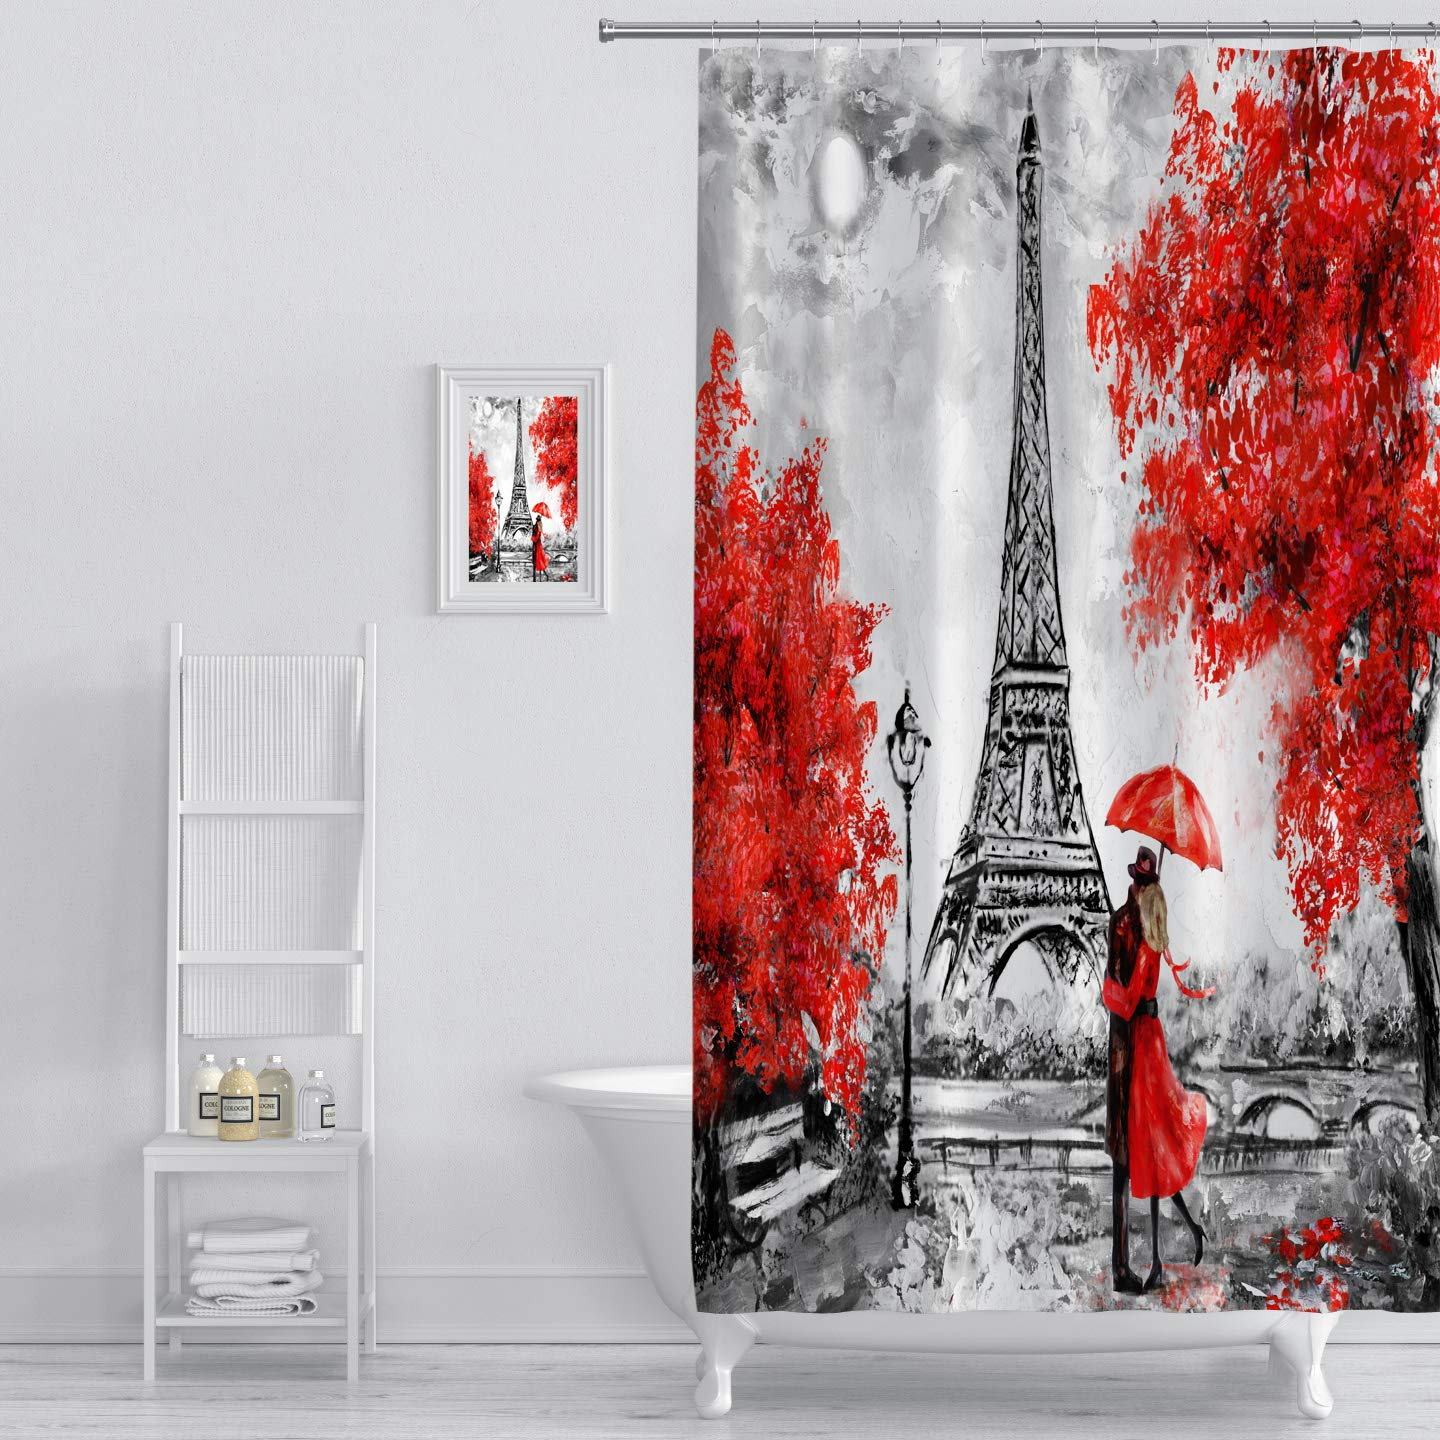 Muatoo Shower Curtain Oil Painting Paris European City Landscape France Eiffel Tower Black White And Red Graphic Print Polyester Fabric Bathroom Decor Sets With Hooks 72 X 72 Inches Amazon In Home